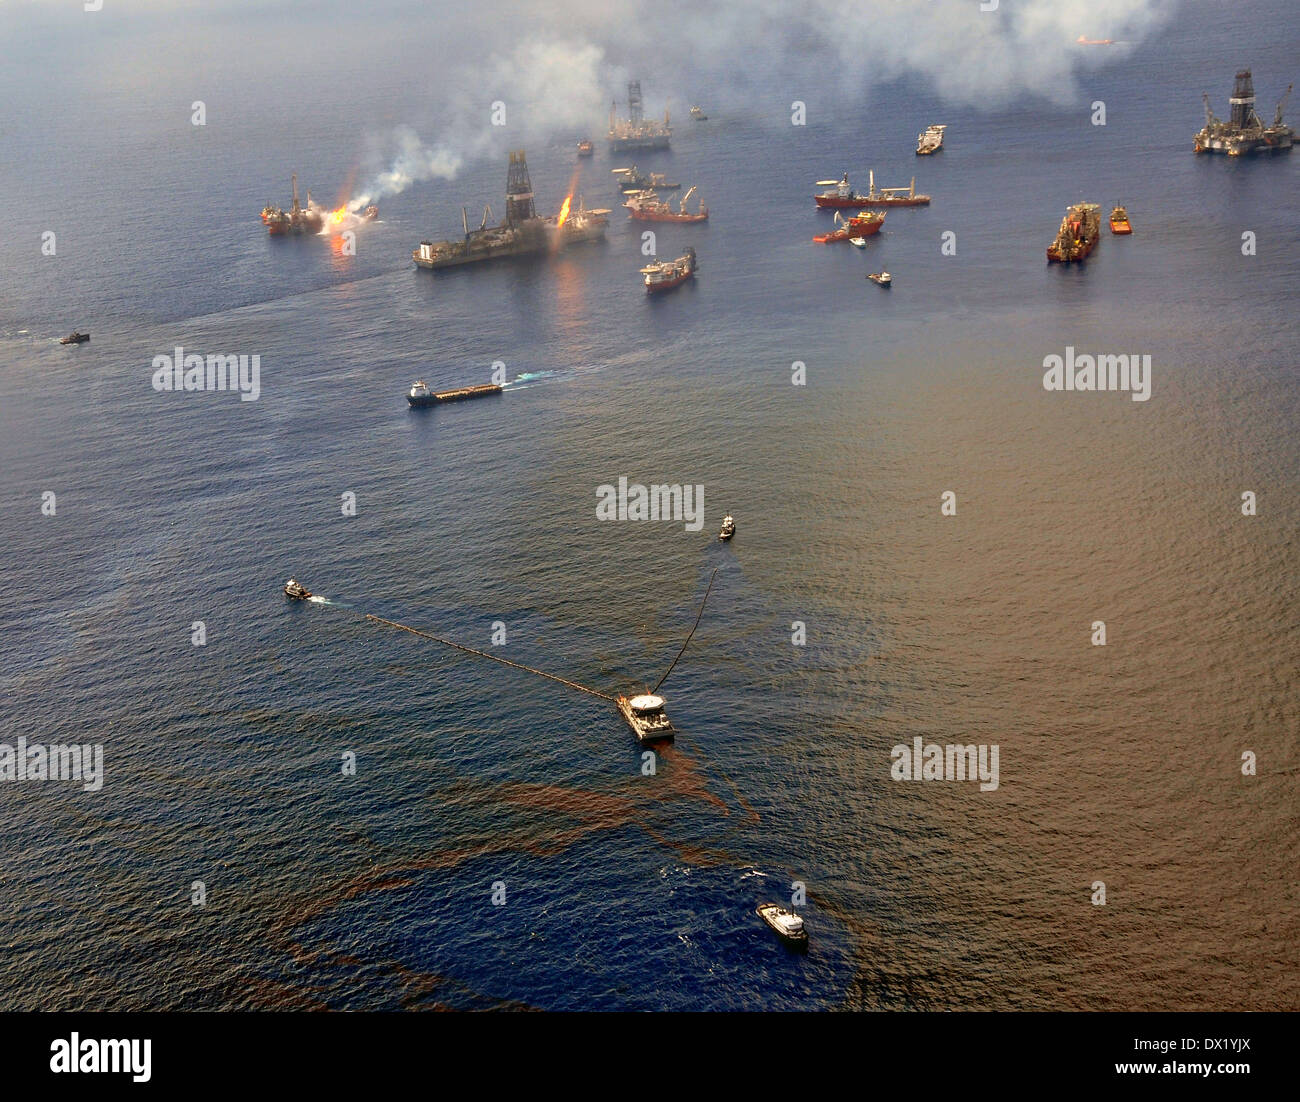 Oil skimming vessels operate around the the site of the Deepwater Horizon disaster as drill ship Discoverer Enterprise burns off gas from the wellhead June 26, 2010 in the Gulf of Mexico. - Stock Image